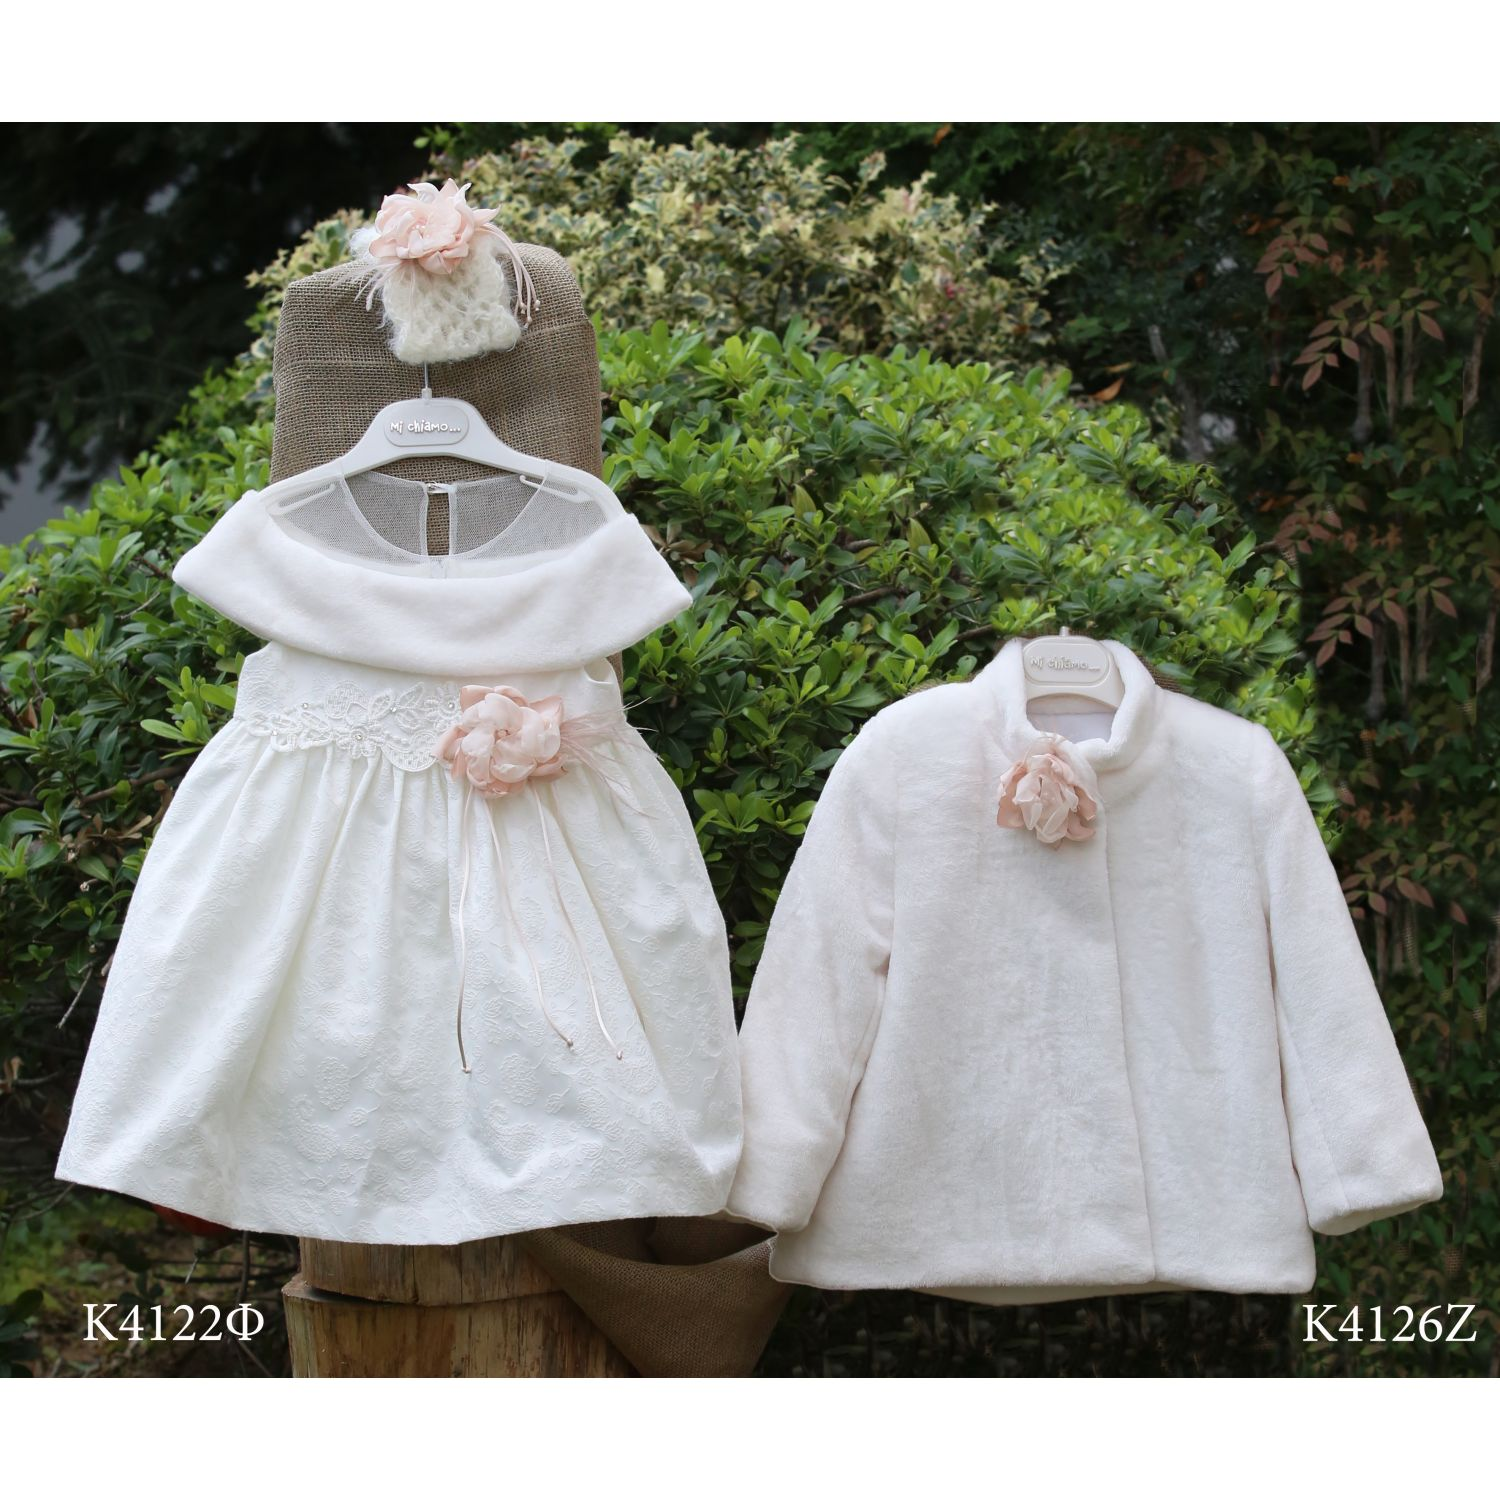 Winter baptismal dress and fur K4122f